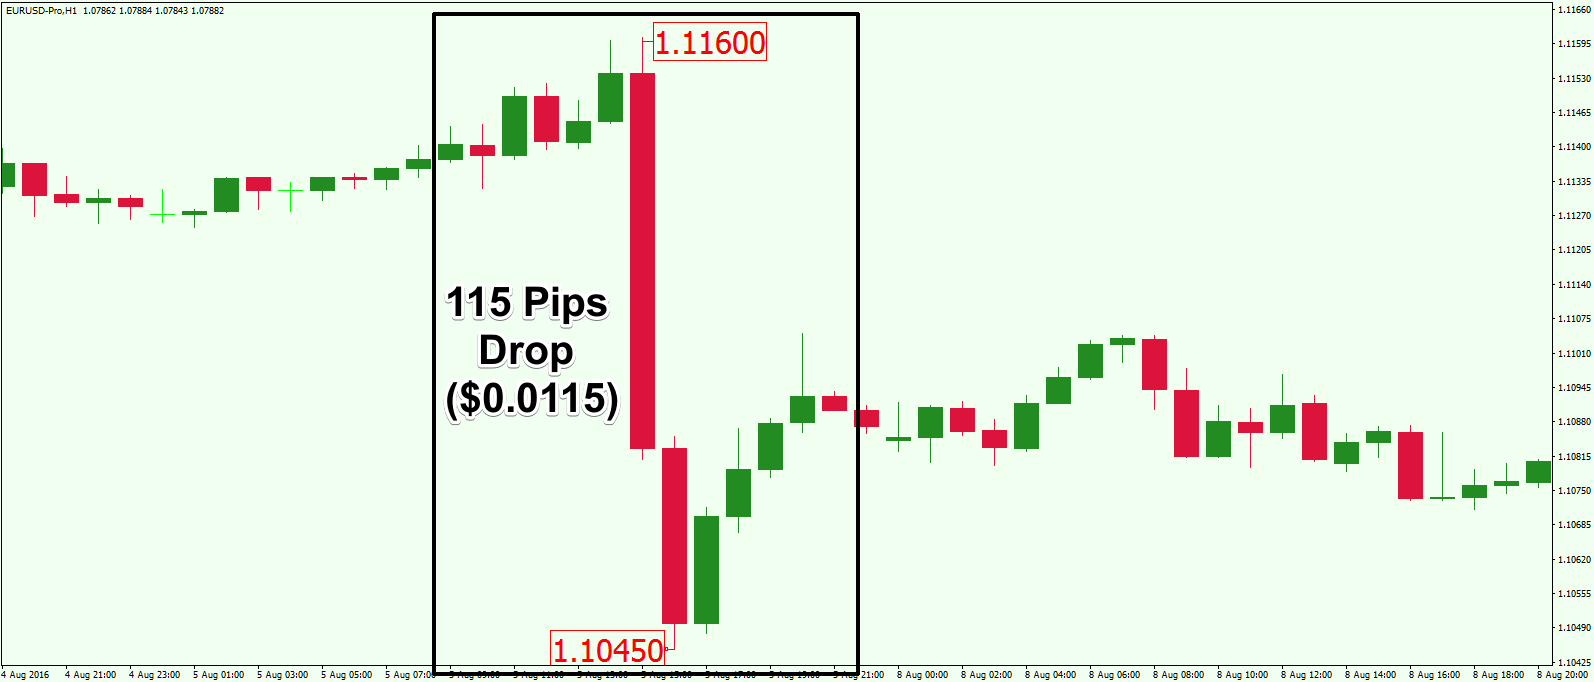 Value of 1 pip in forex